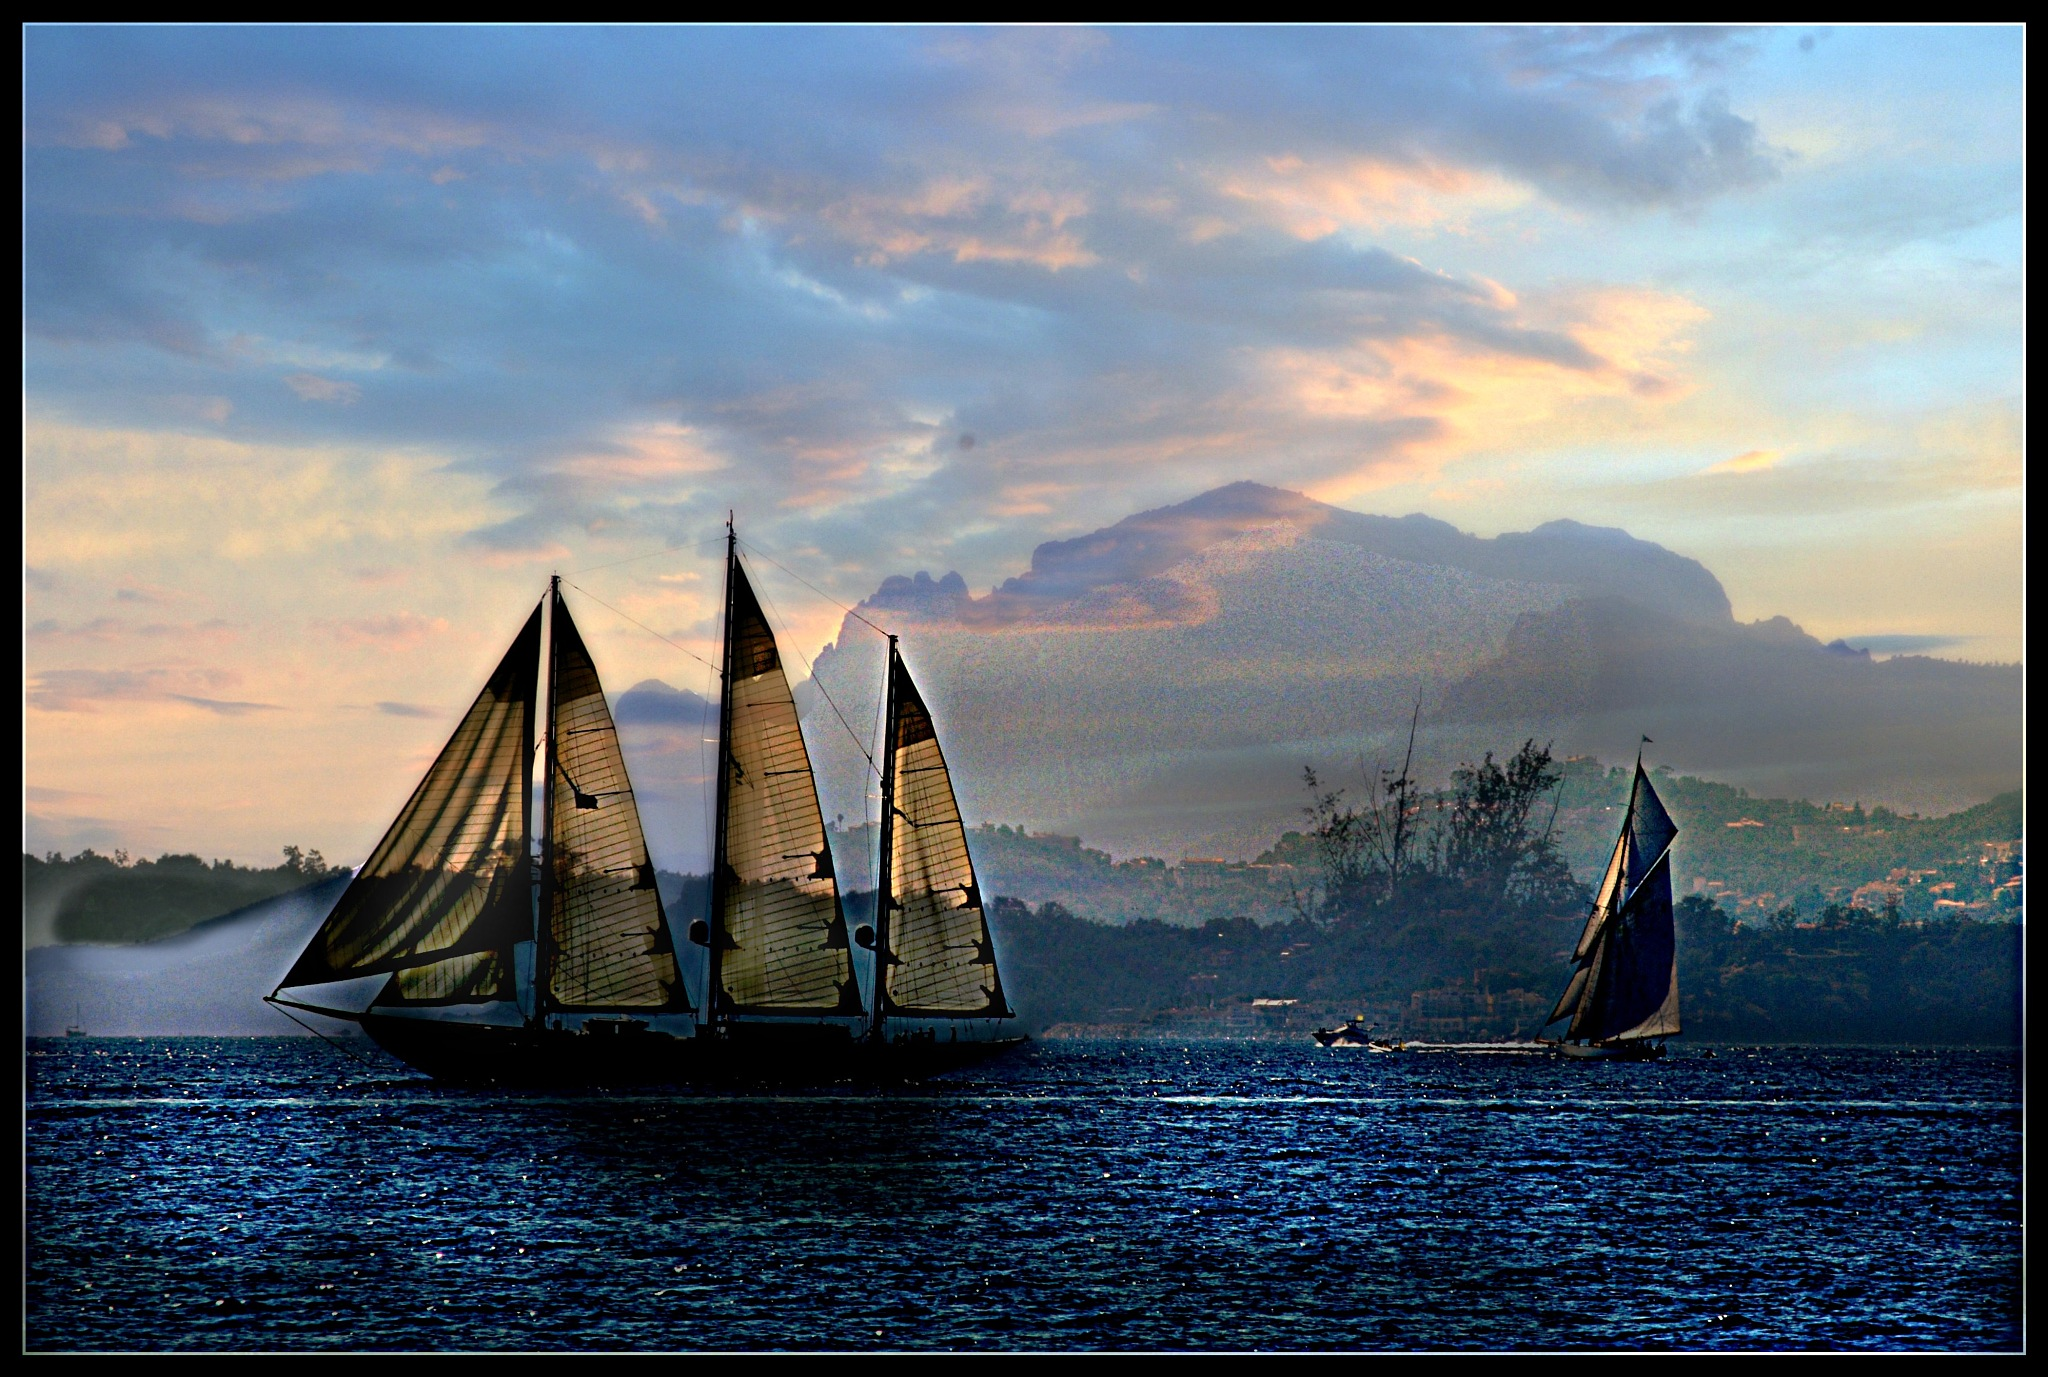 Schooner Sailing into the Fog by Tom Horonzy